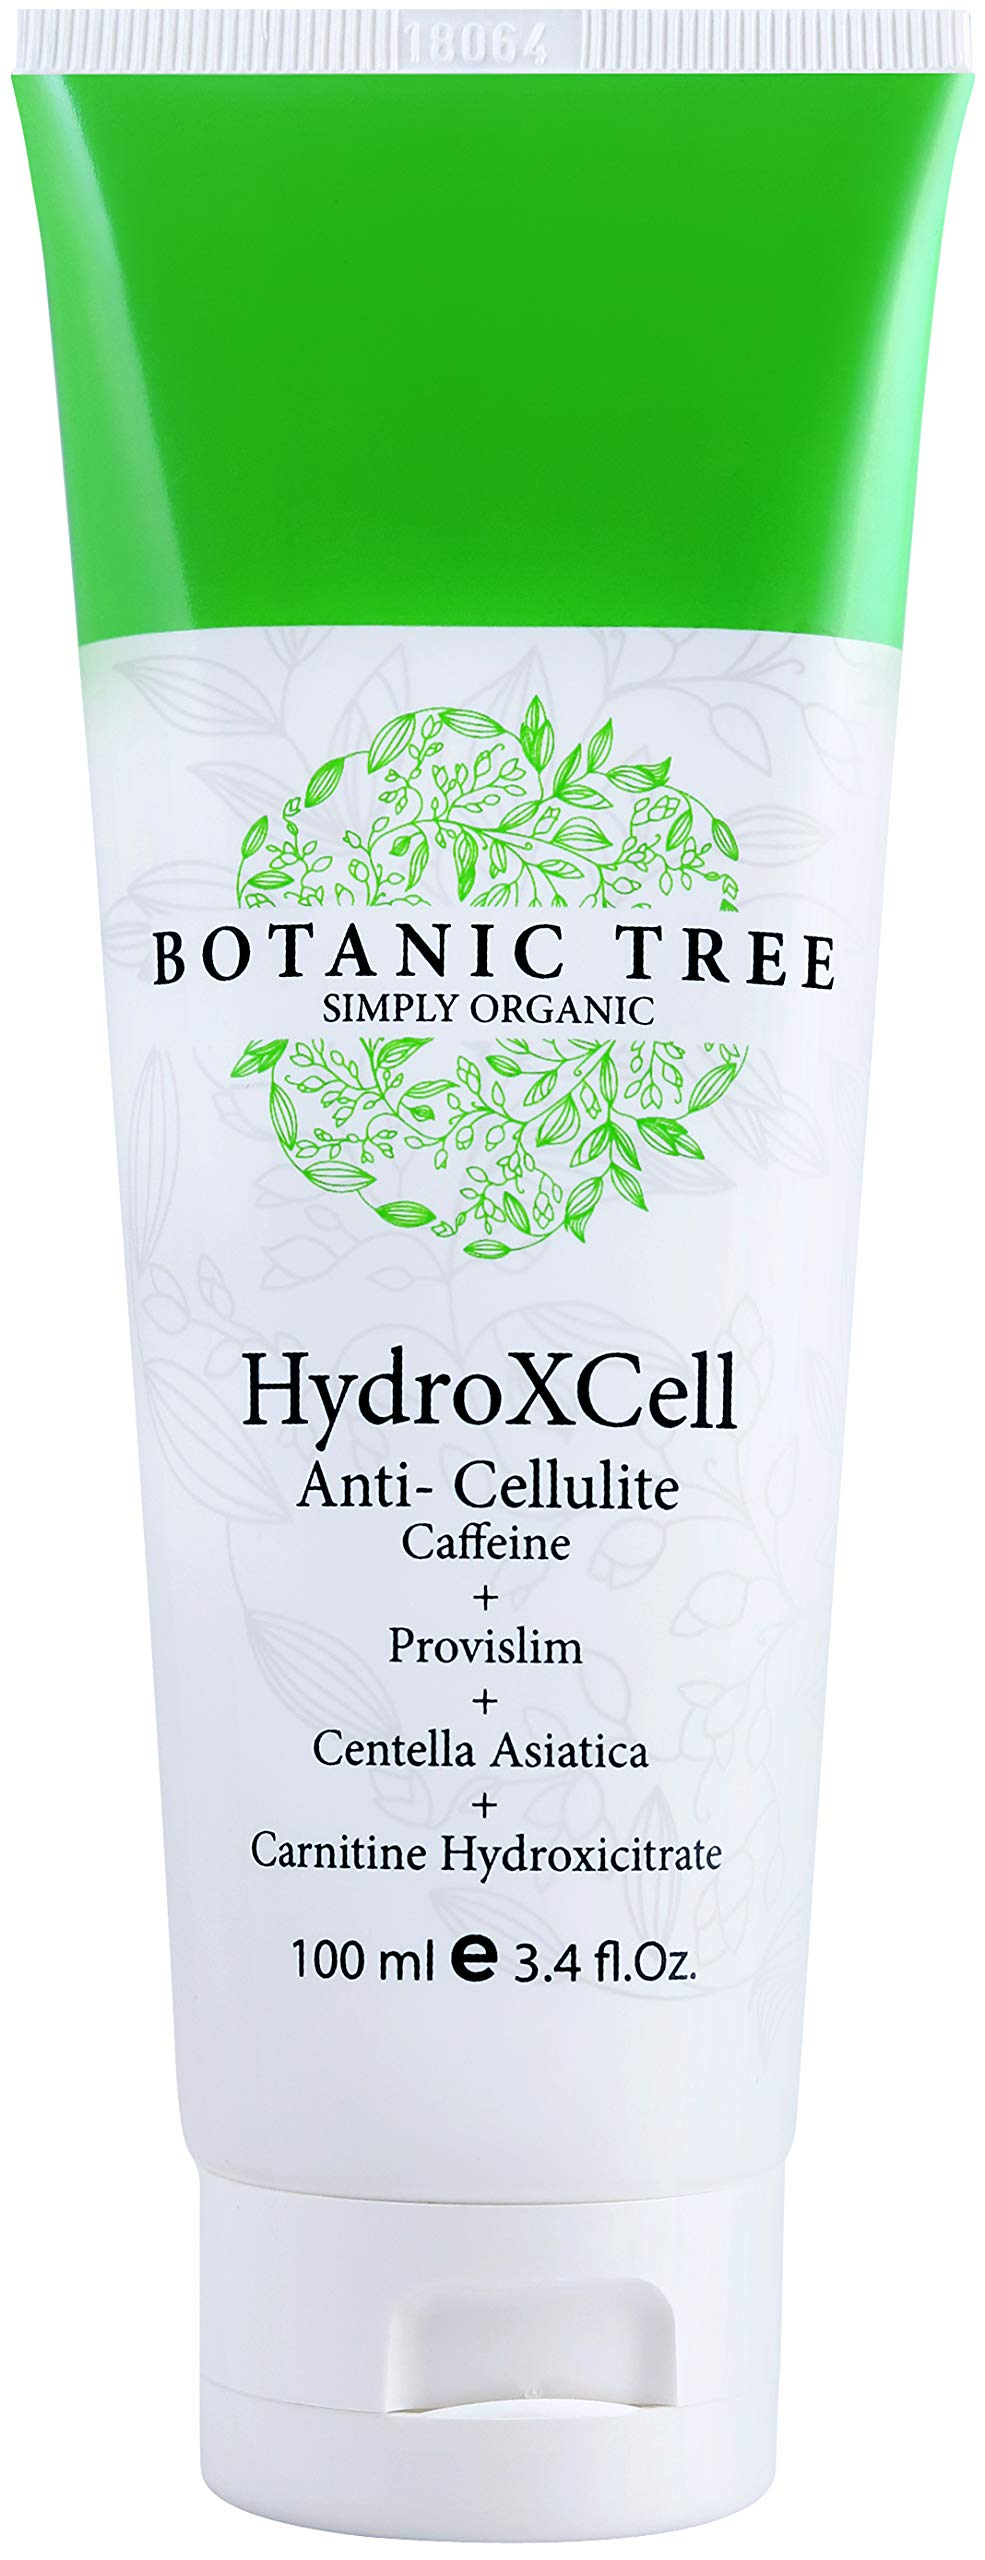 HydroXCell Anti Cellulite Cream Botanic Tree-Decrease Cellulite in 92% of Customers After 2 Months-Proven Results-100% Organic Extract-Cellulite Cream Remover w/Caffeine,Centella Asiatica,and Gingko.